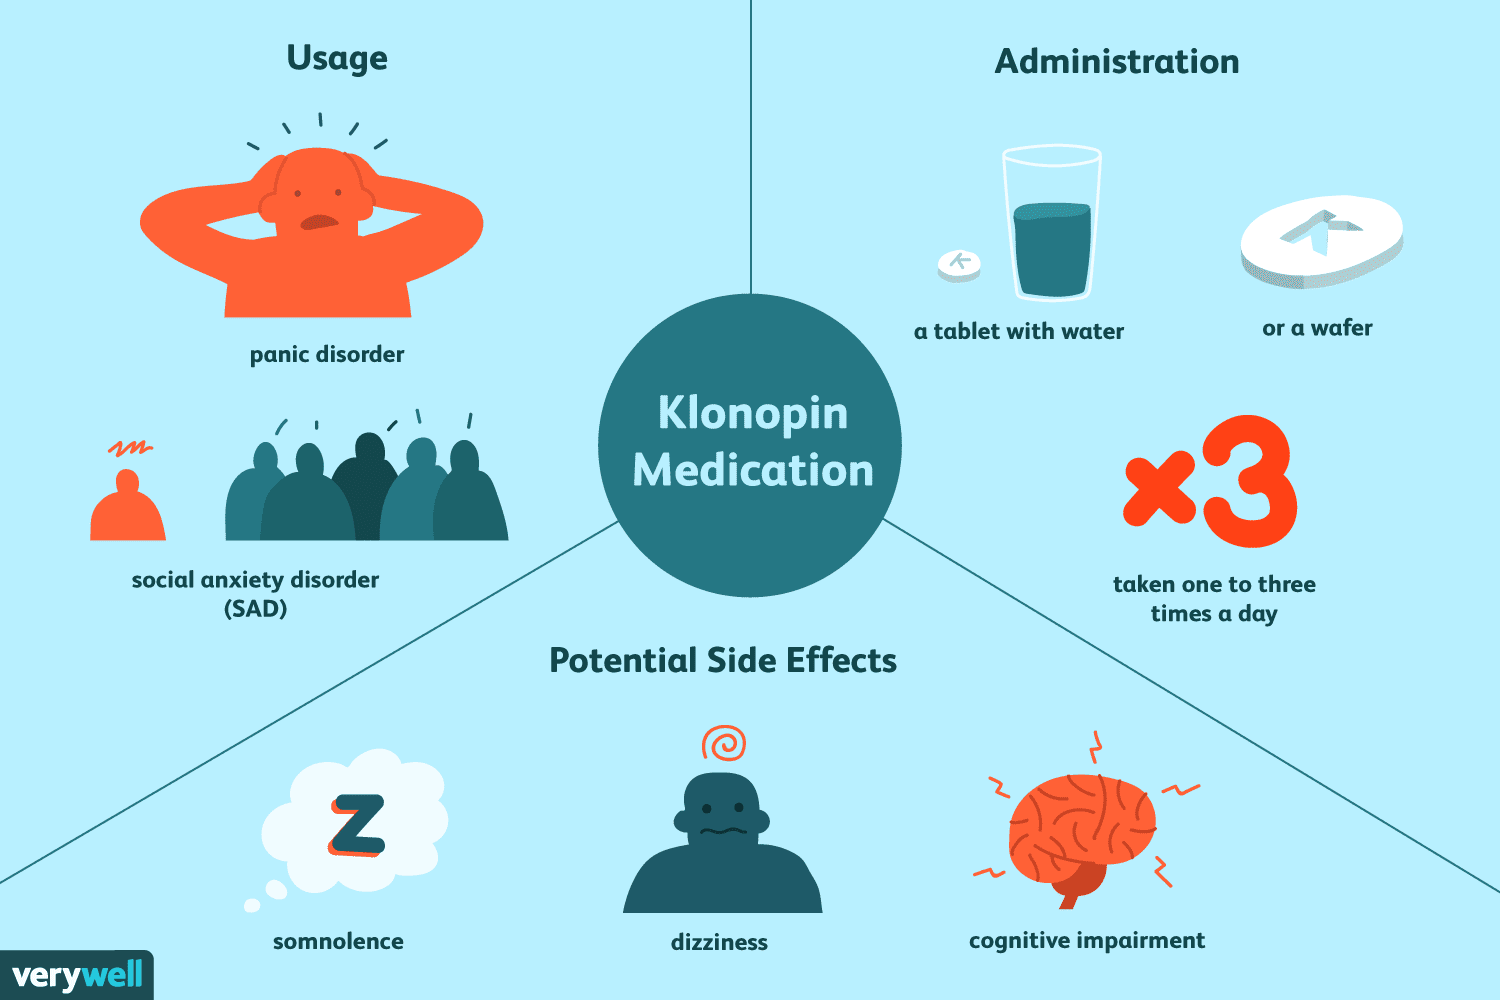 where is clonazepam effectively